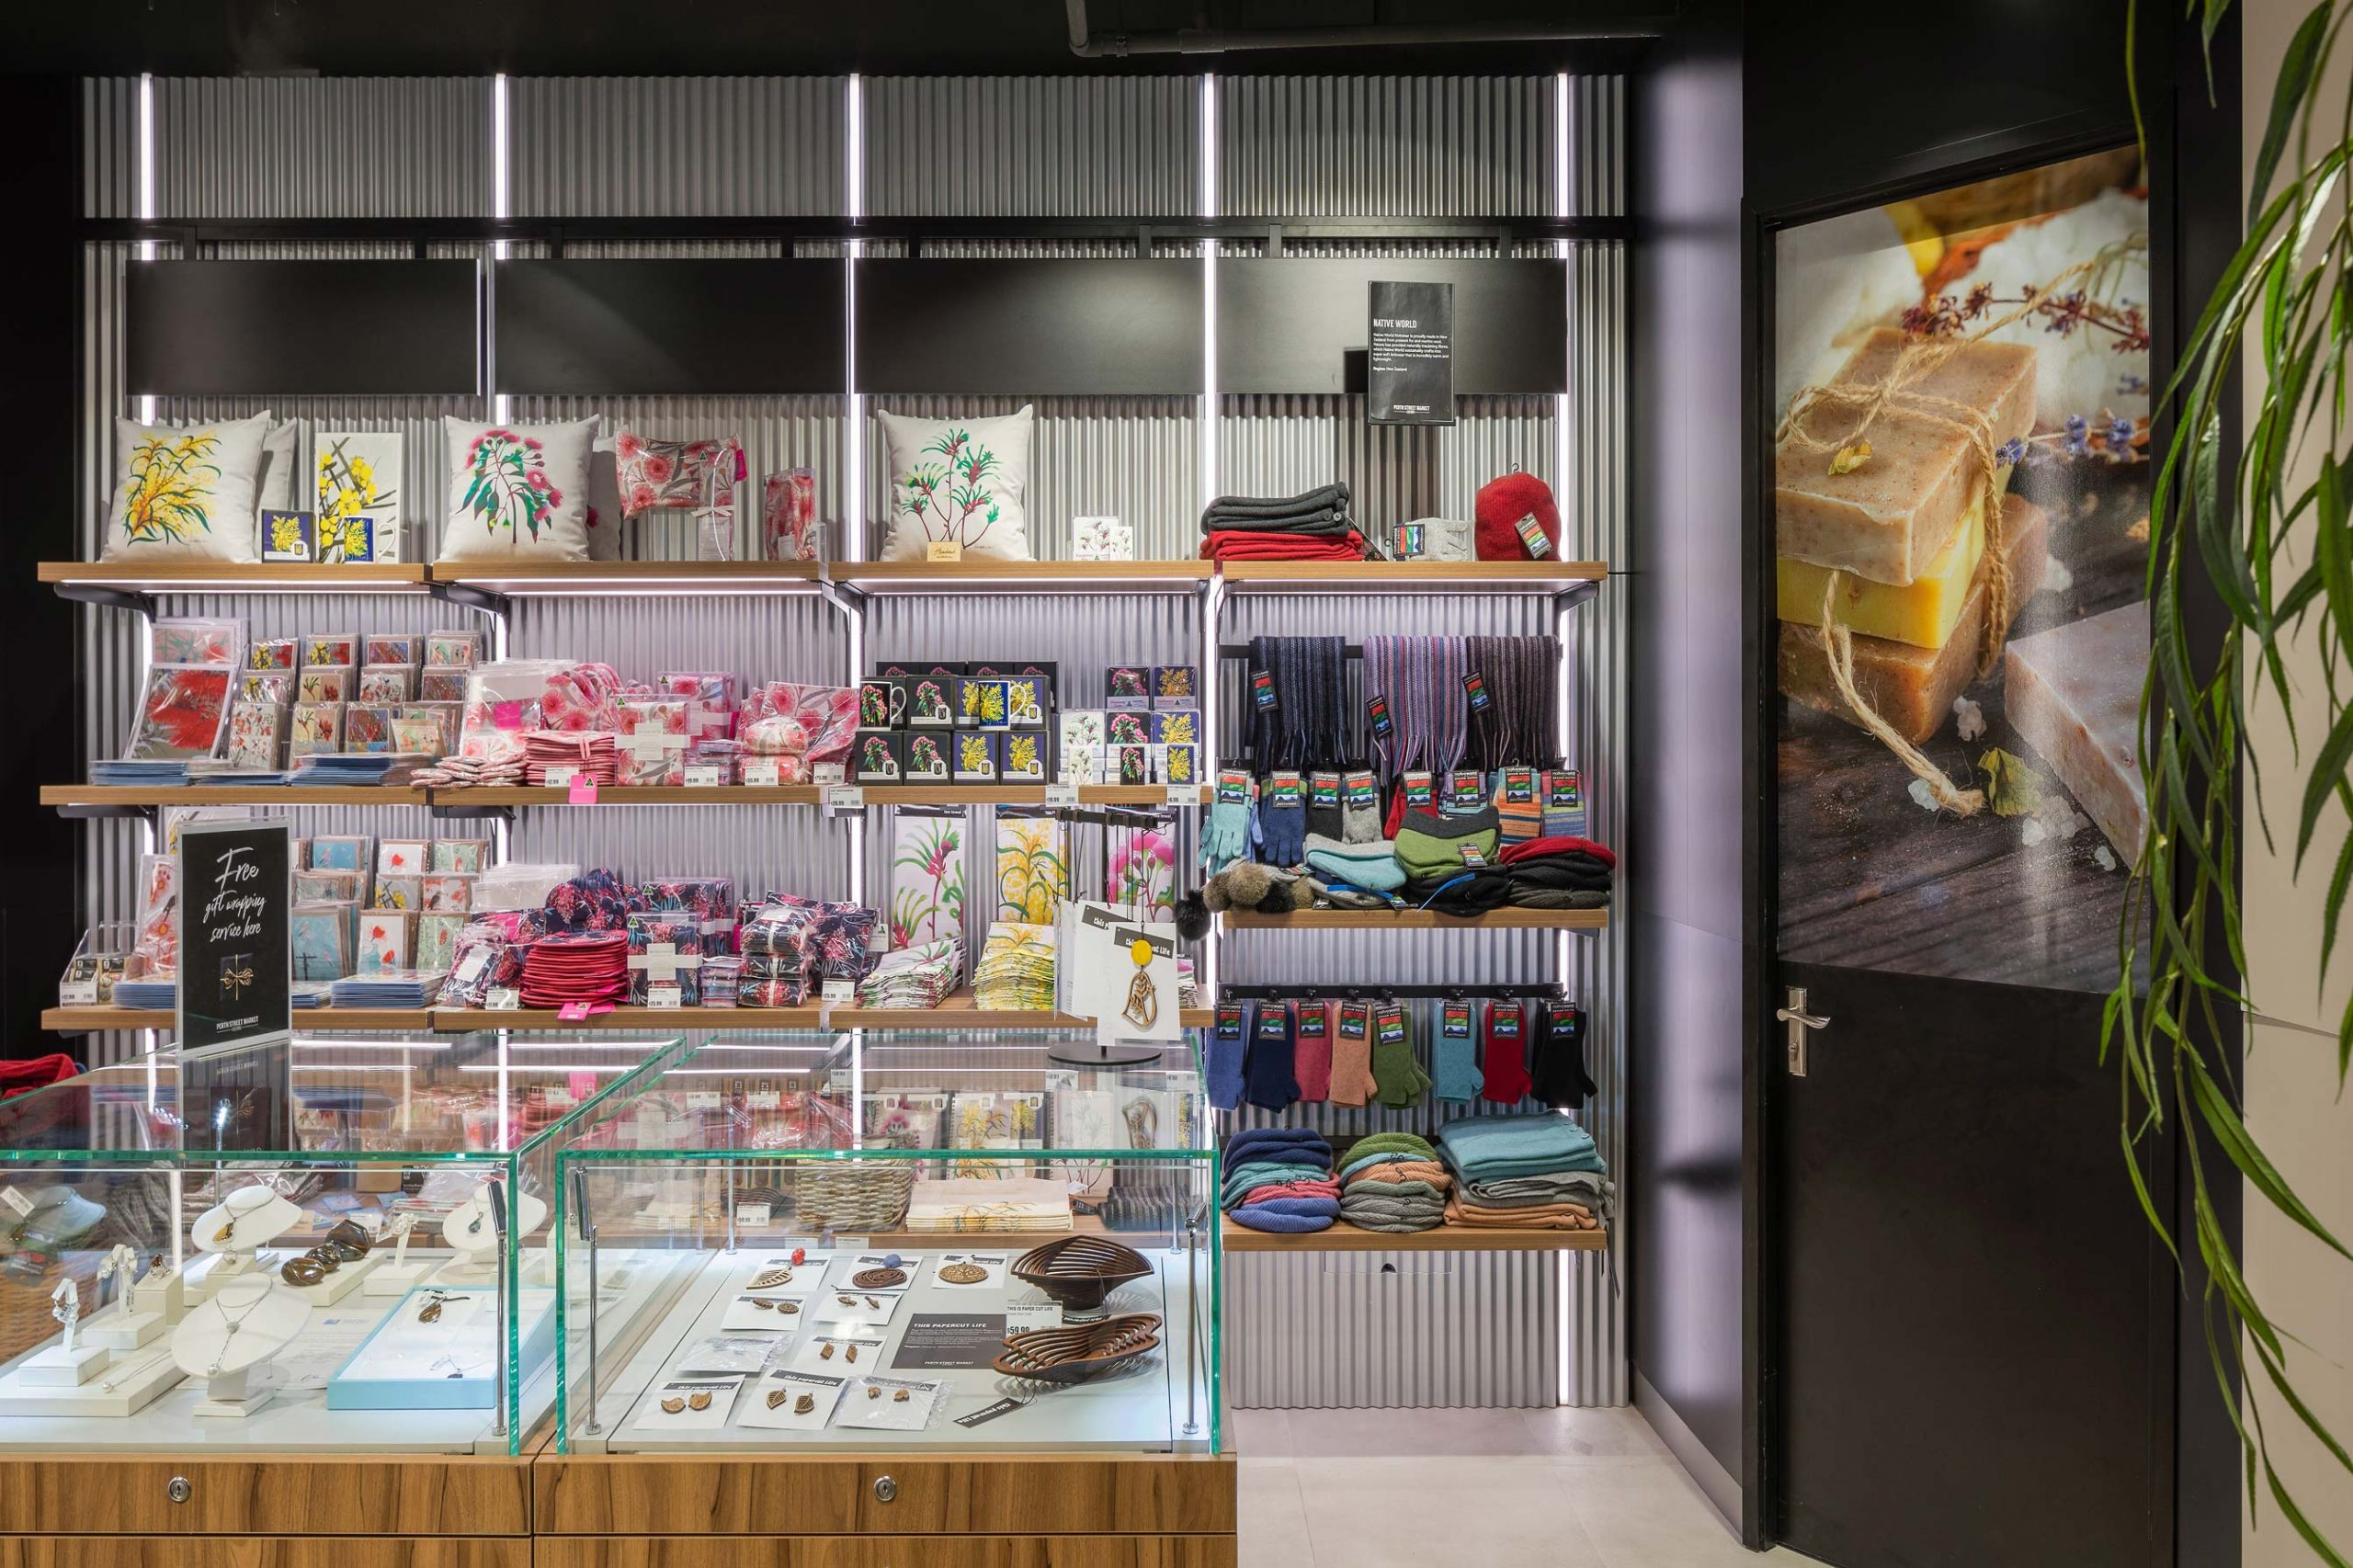 Australian themed Duty Free Shop at Perth International Airport with corrugated tin walls and floral printed gifts